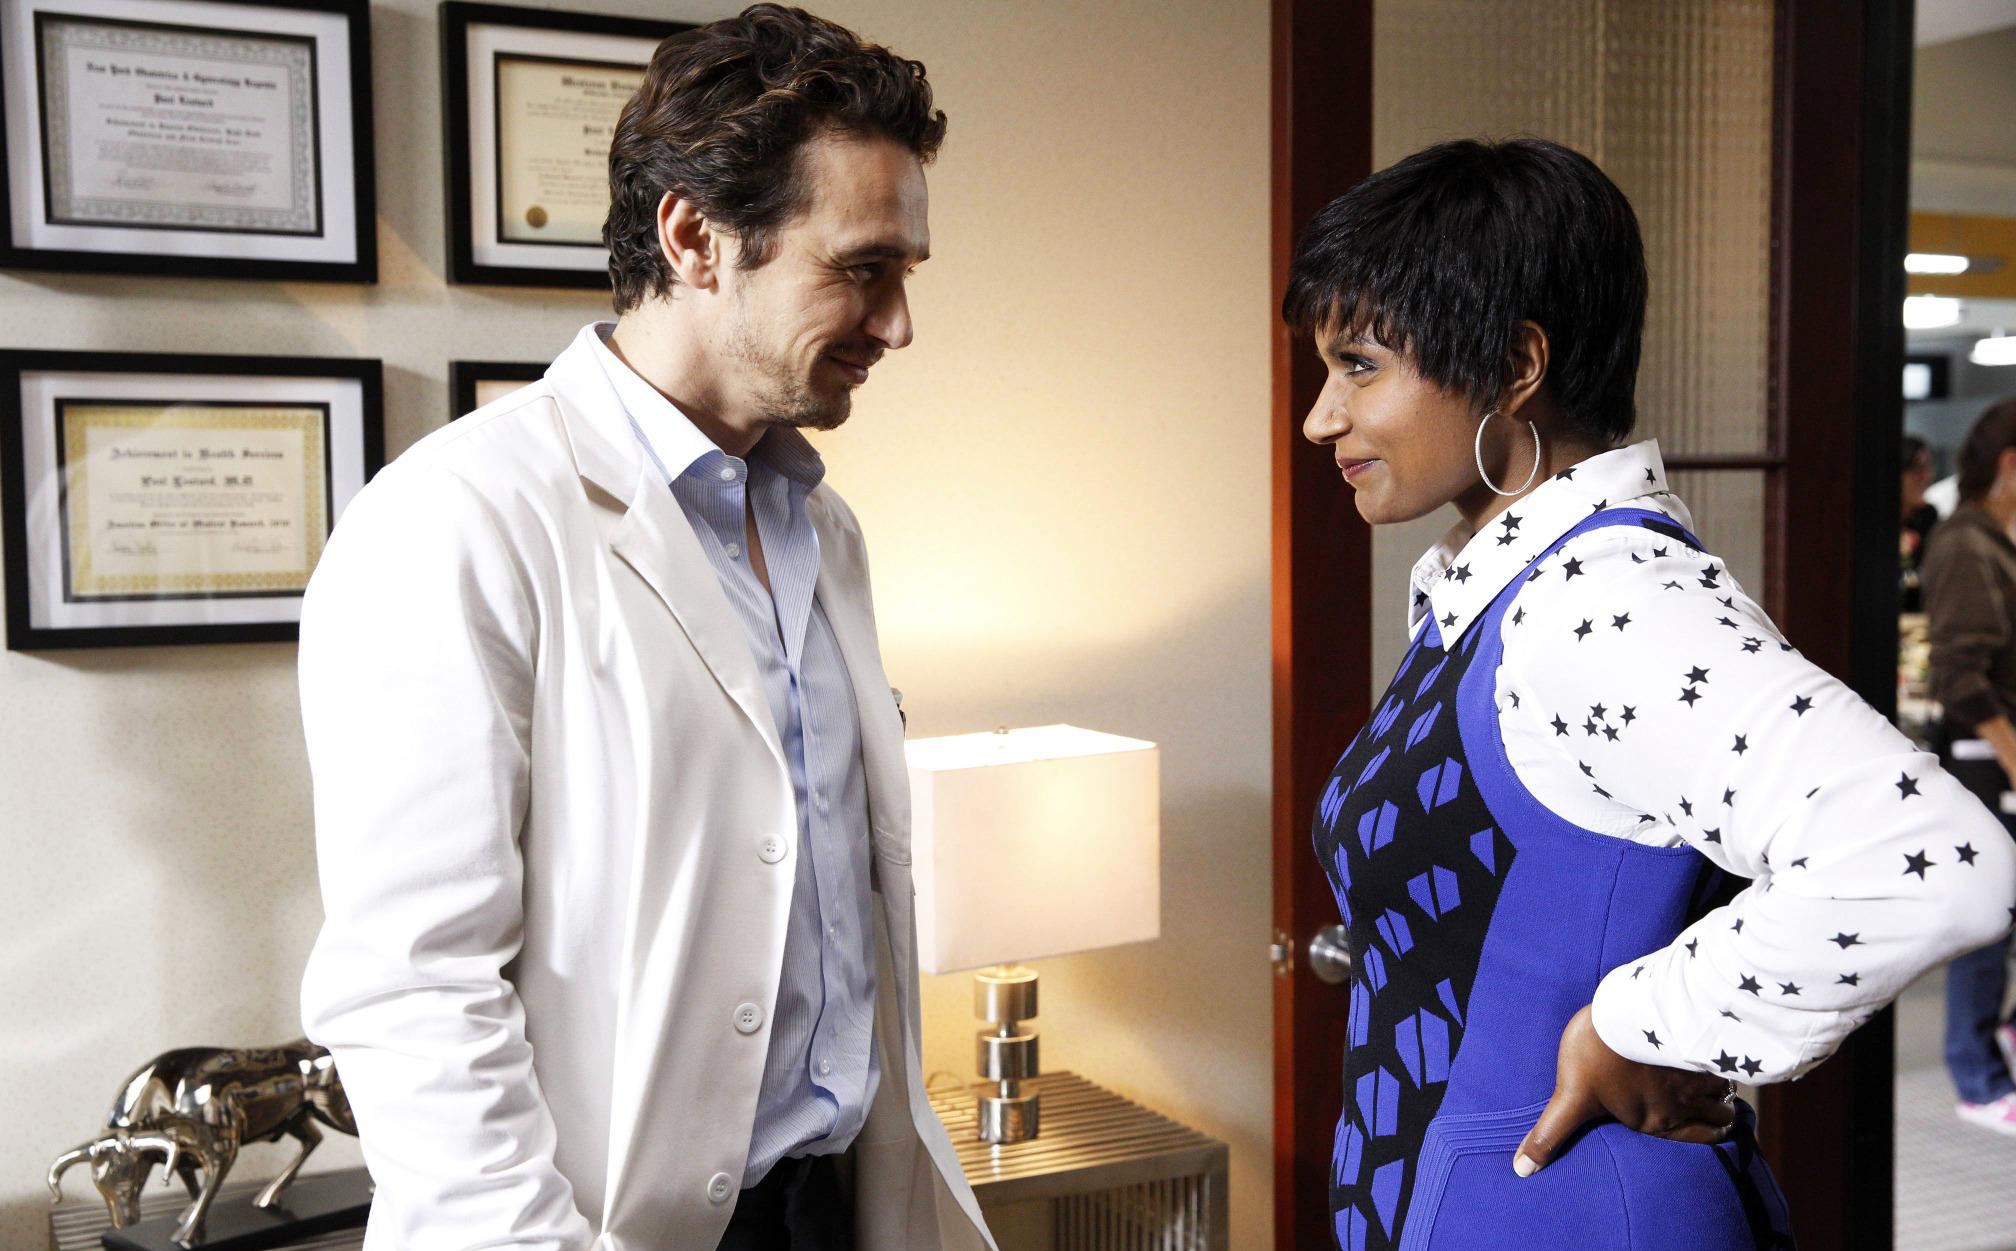 mindy project pilot Watch the mindy project episodes online visit sidereel to access links to episodes, show schedules, reviews, recaps and more s 1 e 1 pilot september 25, 2012.